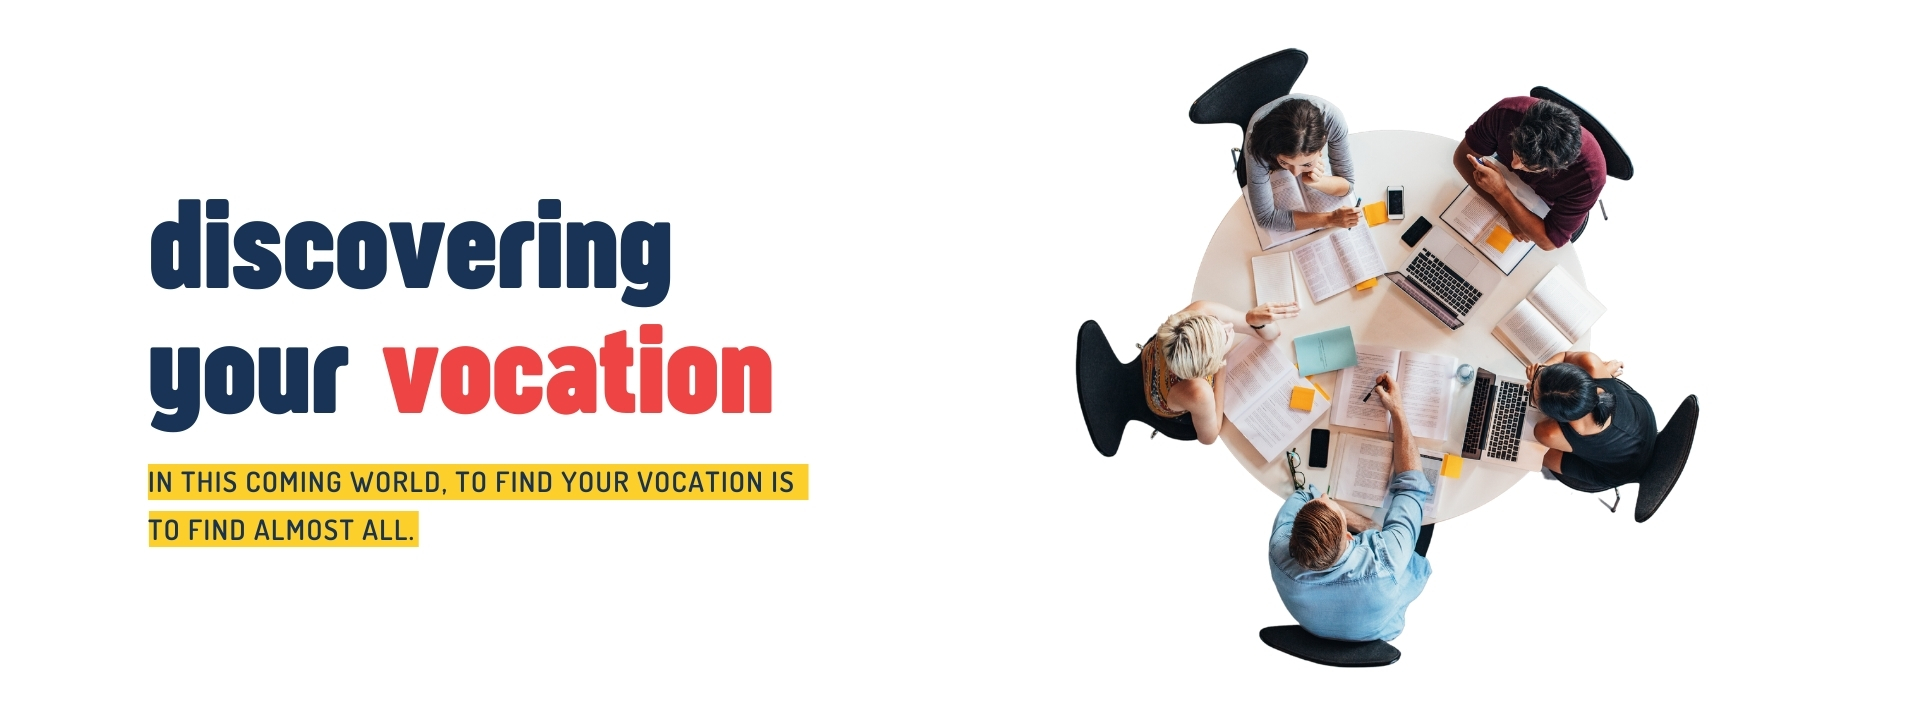 Discovering your vocation - educational tourism - spain - europroyectos